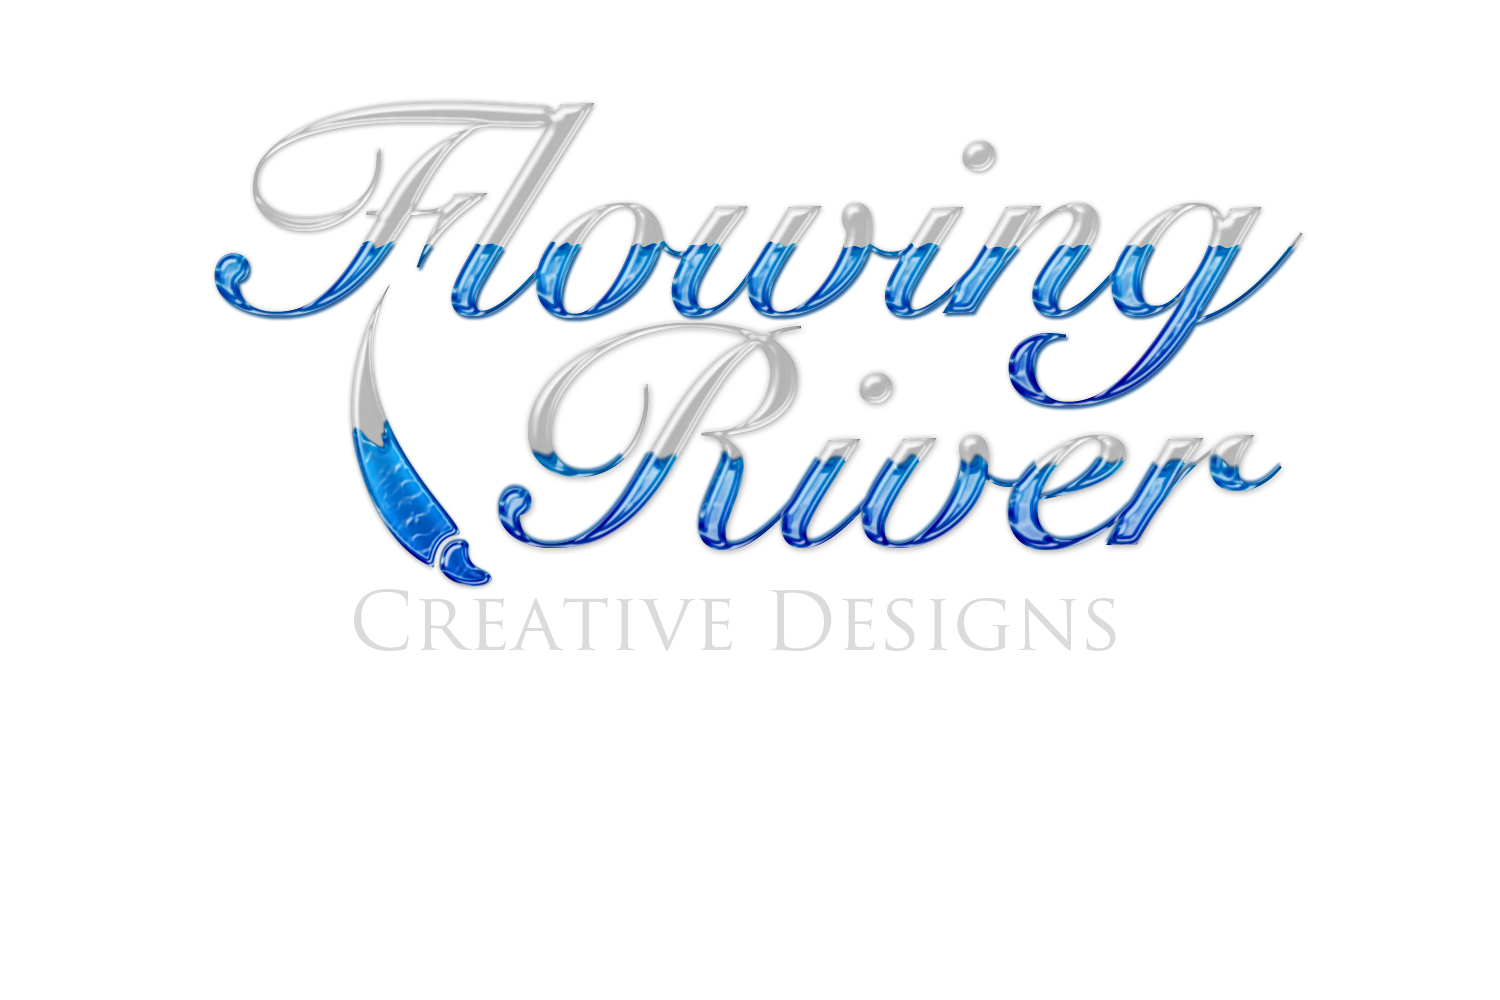 Flowing River Creative Designs